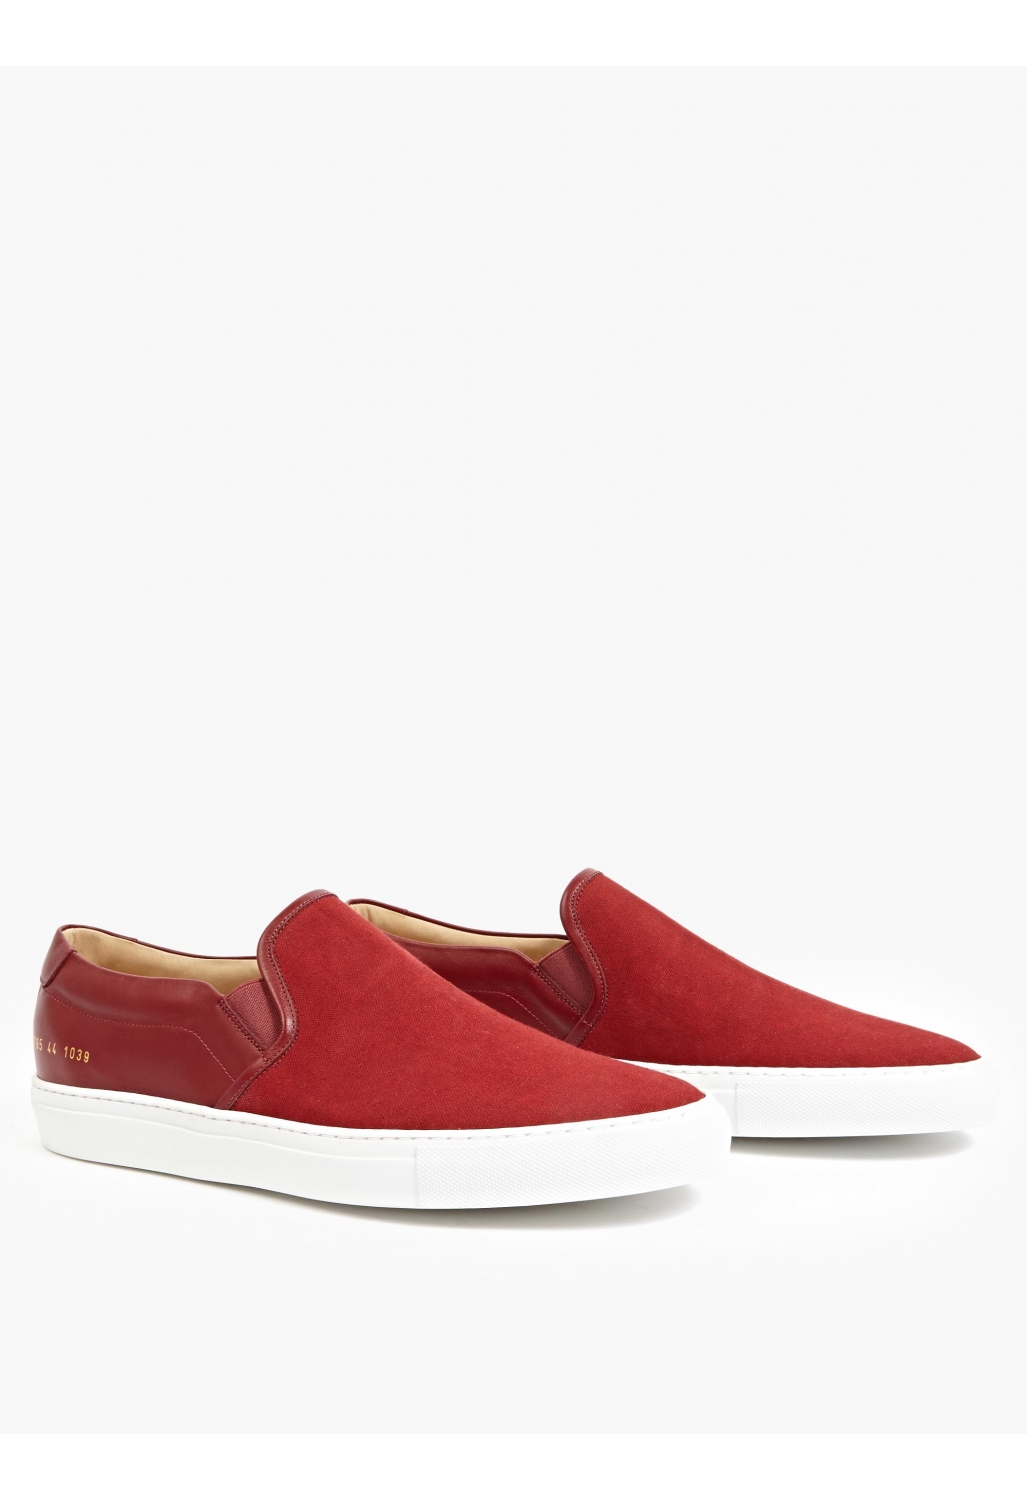 Men Canvas Shoes. Clothing. Shoes. Mens Shoes. All Mens Shoes. Men Canvas Shoes. Showing 48 of results that match your query. Search Product Result. Product - Generic Surplus McNairy Surplus Slip Men Round Toe Canvas Red Sneakers. New. Product Image. Price $ Product Title.